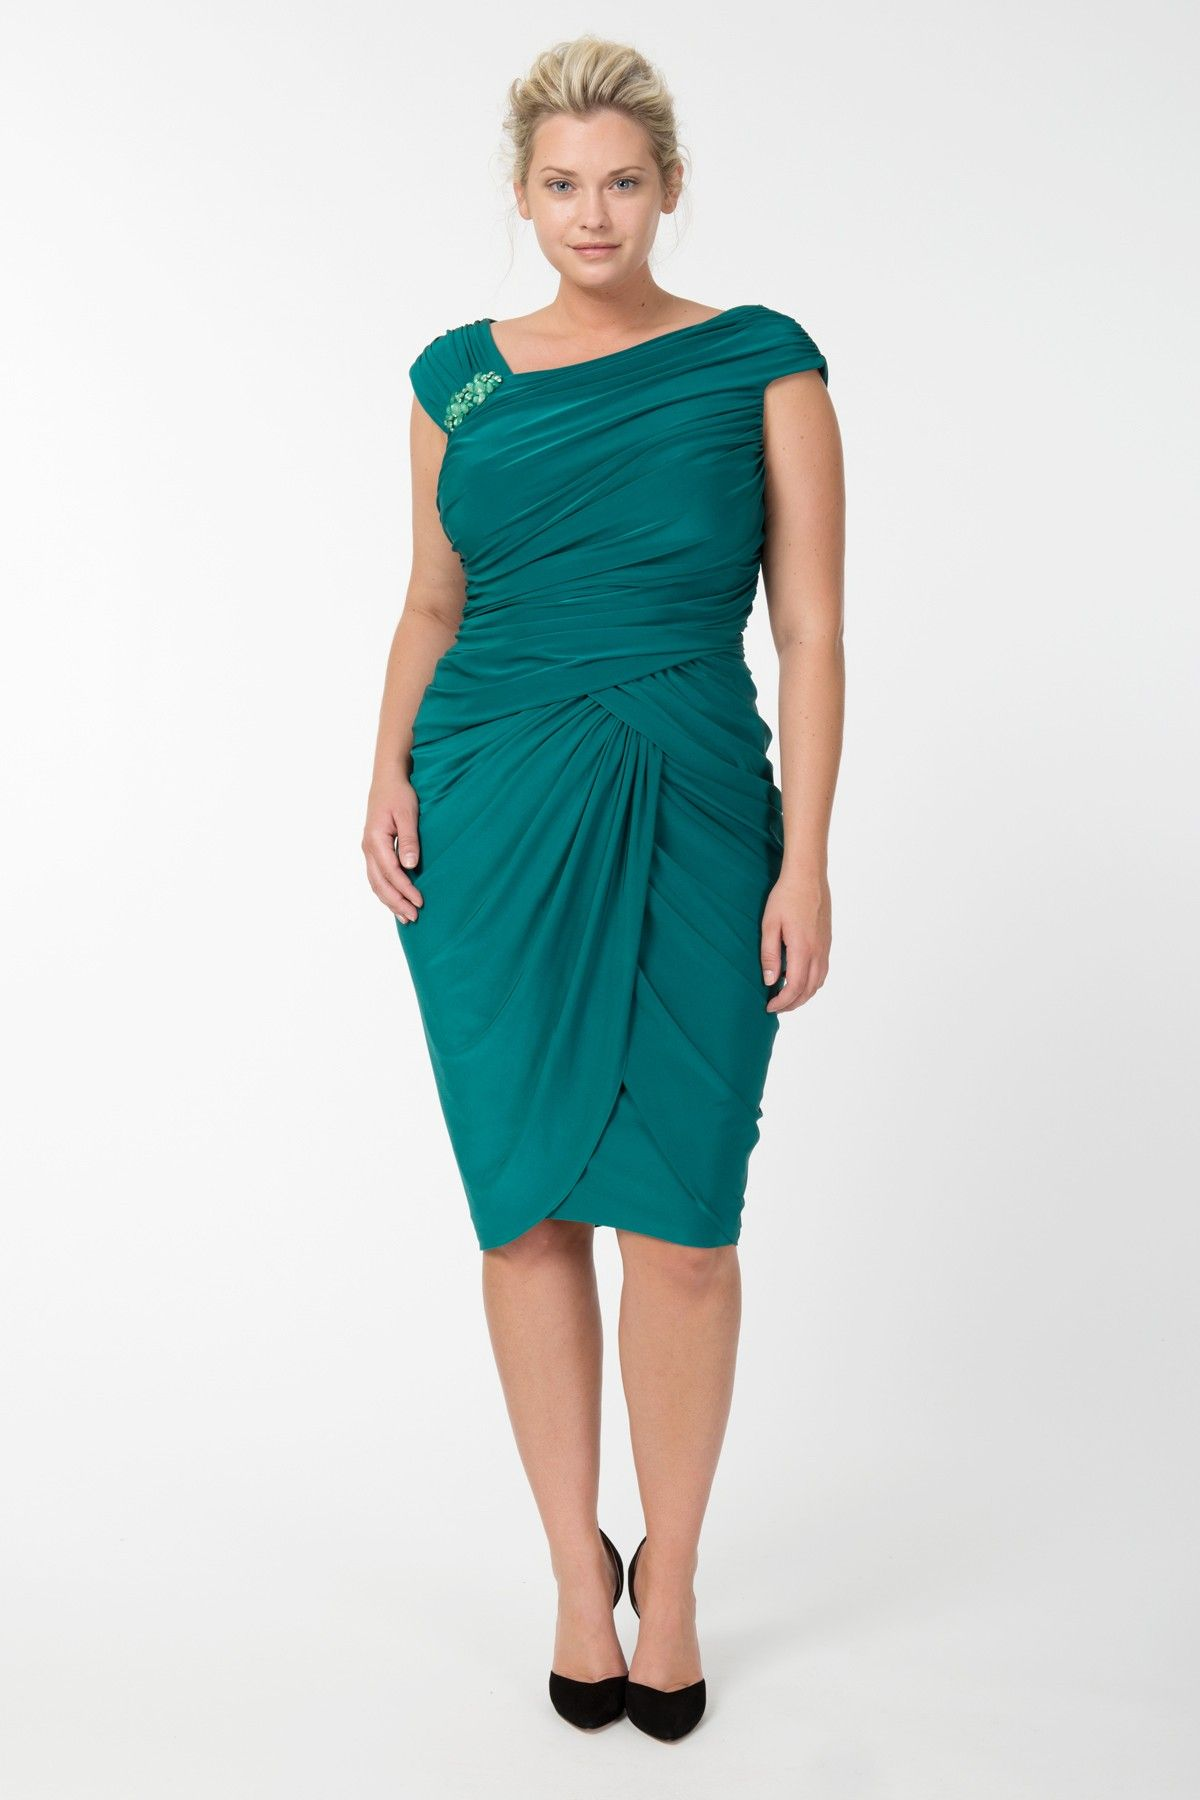 Draped Jersey Cocktail Dress in Emerald - Plus Size Evening Shop ...